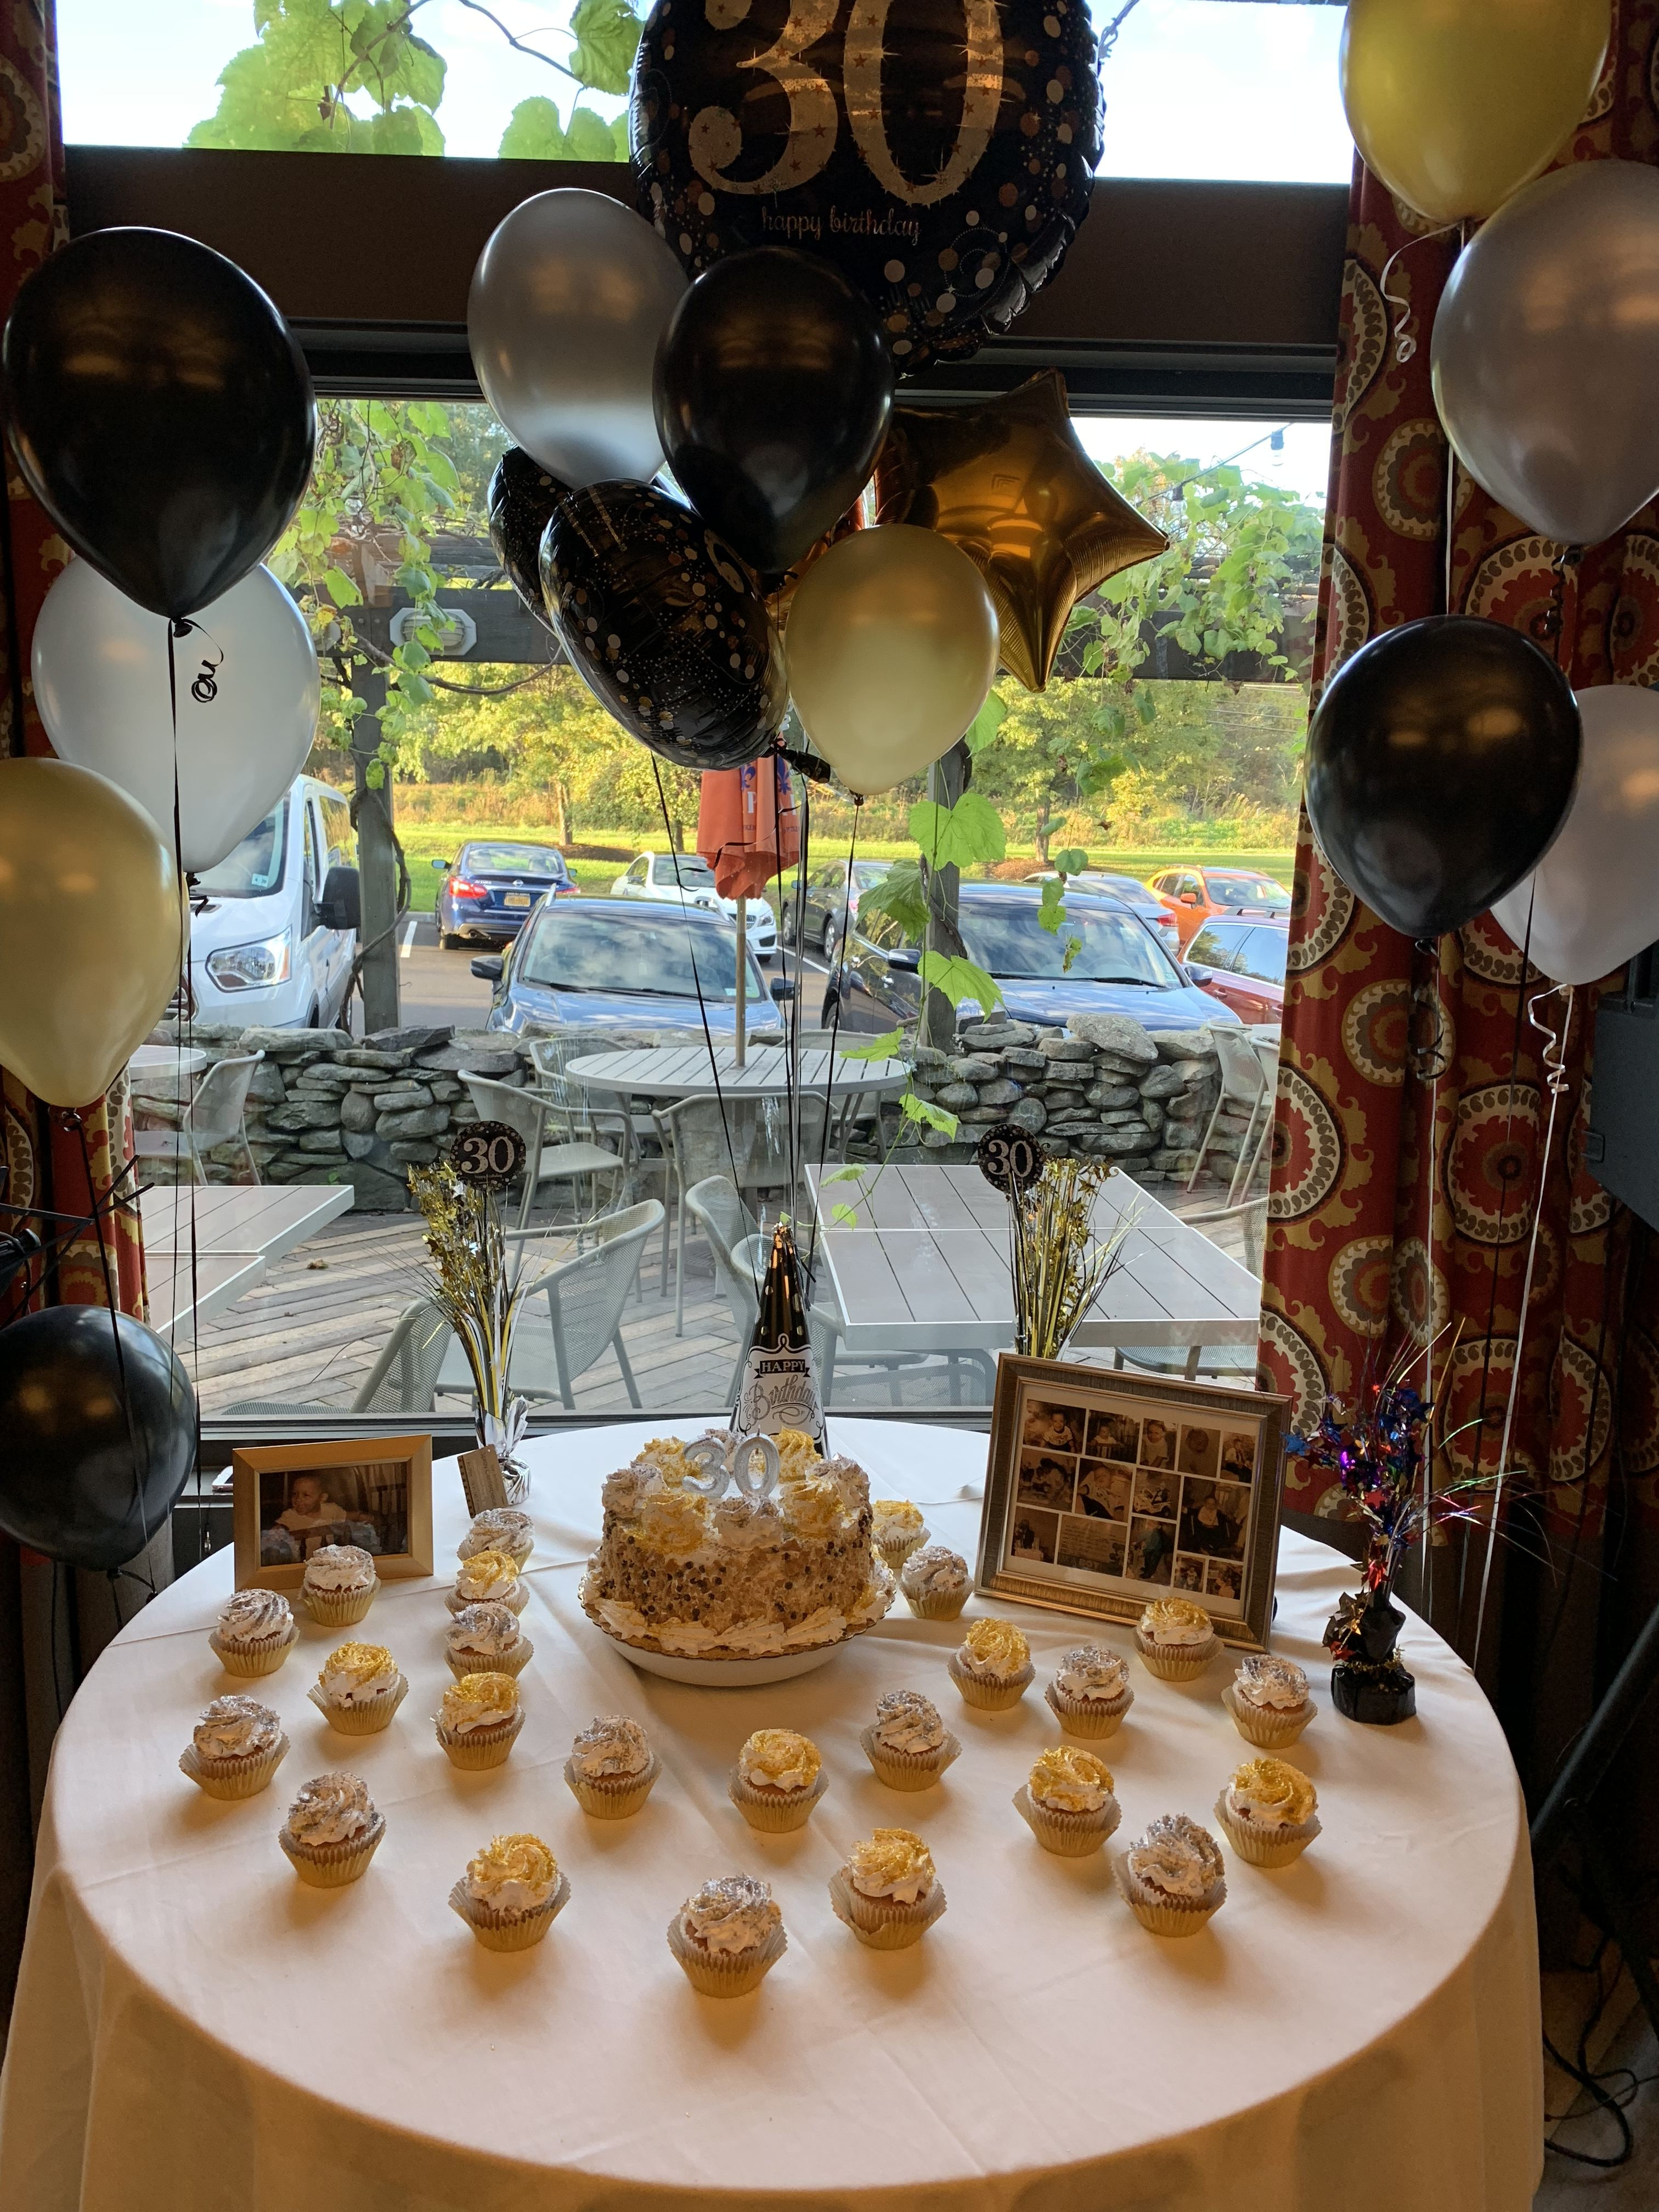 30th Birthday Simple Candy Table Gold Silver White Some Pictures Balloons On The Back And O Husband Birthday Parties Simple Table Settings 30th Birthday